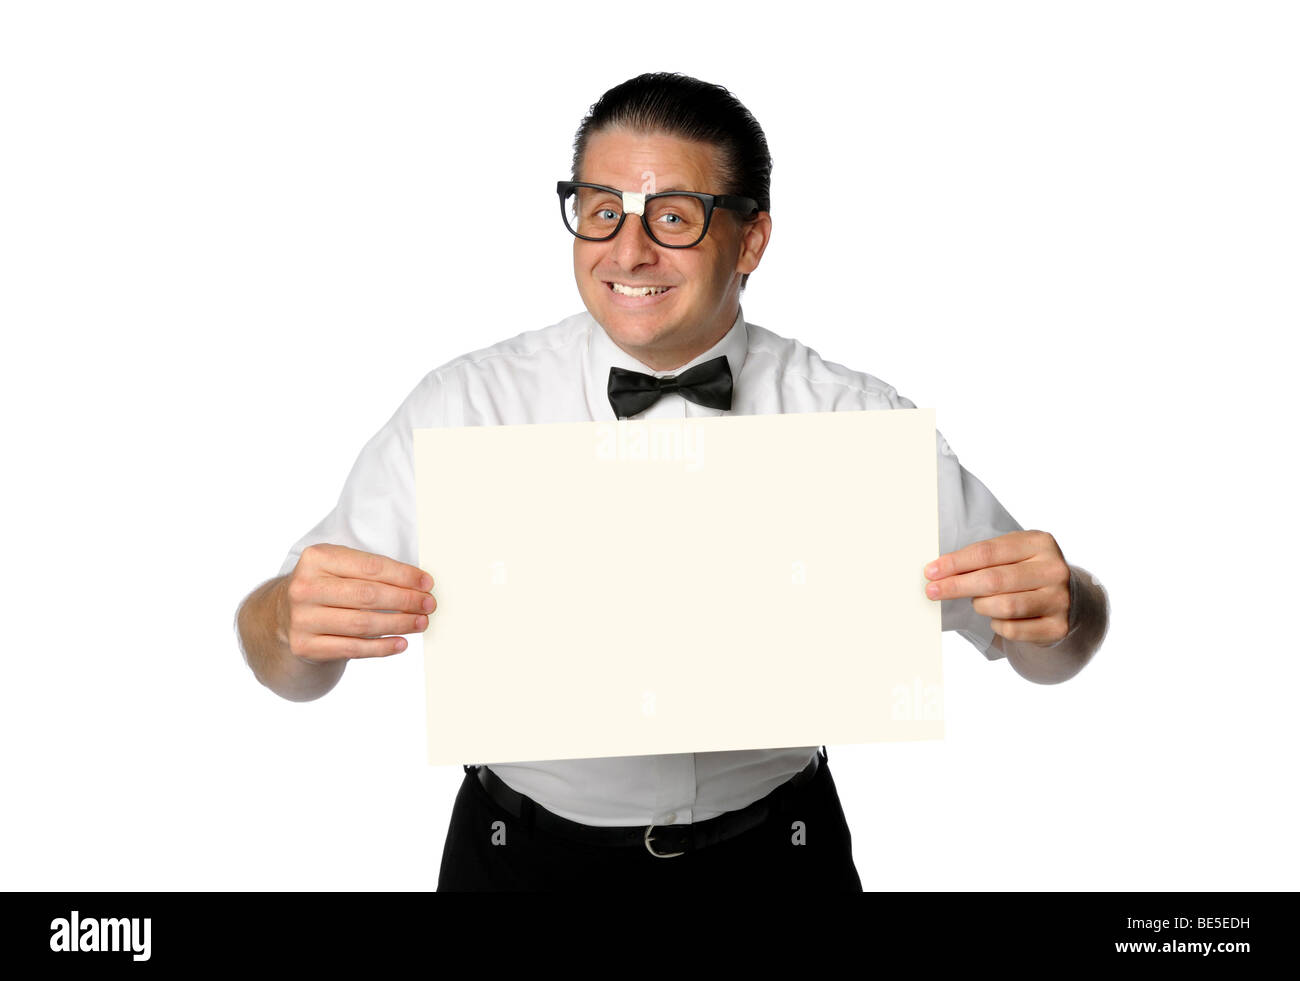 Nerd smiling and holding blank sign isolated over white - Stock Image